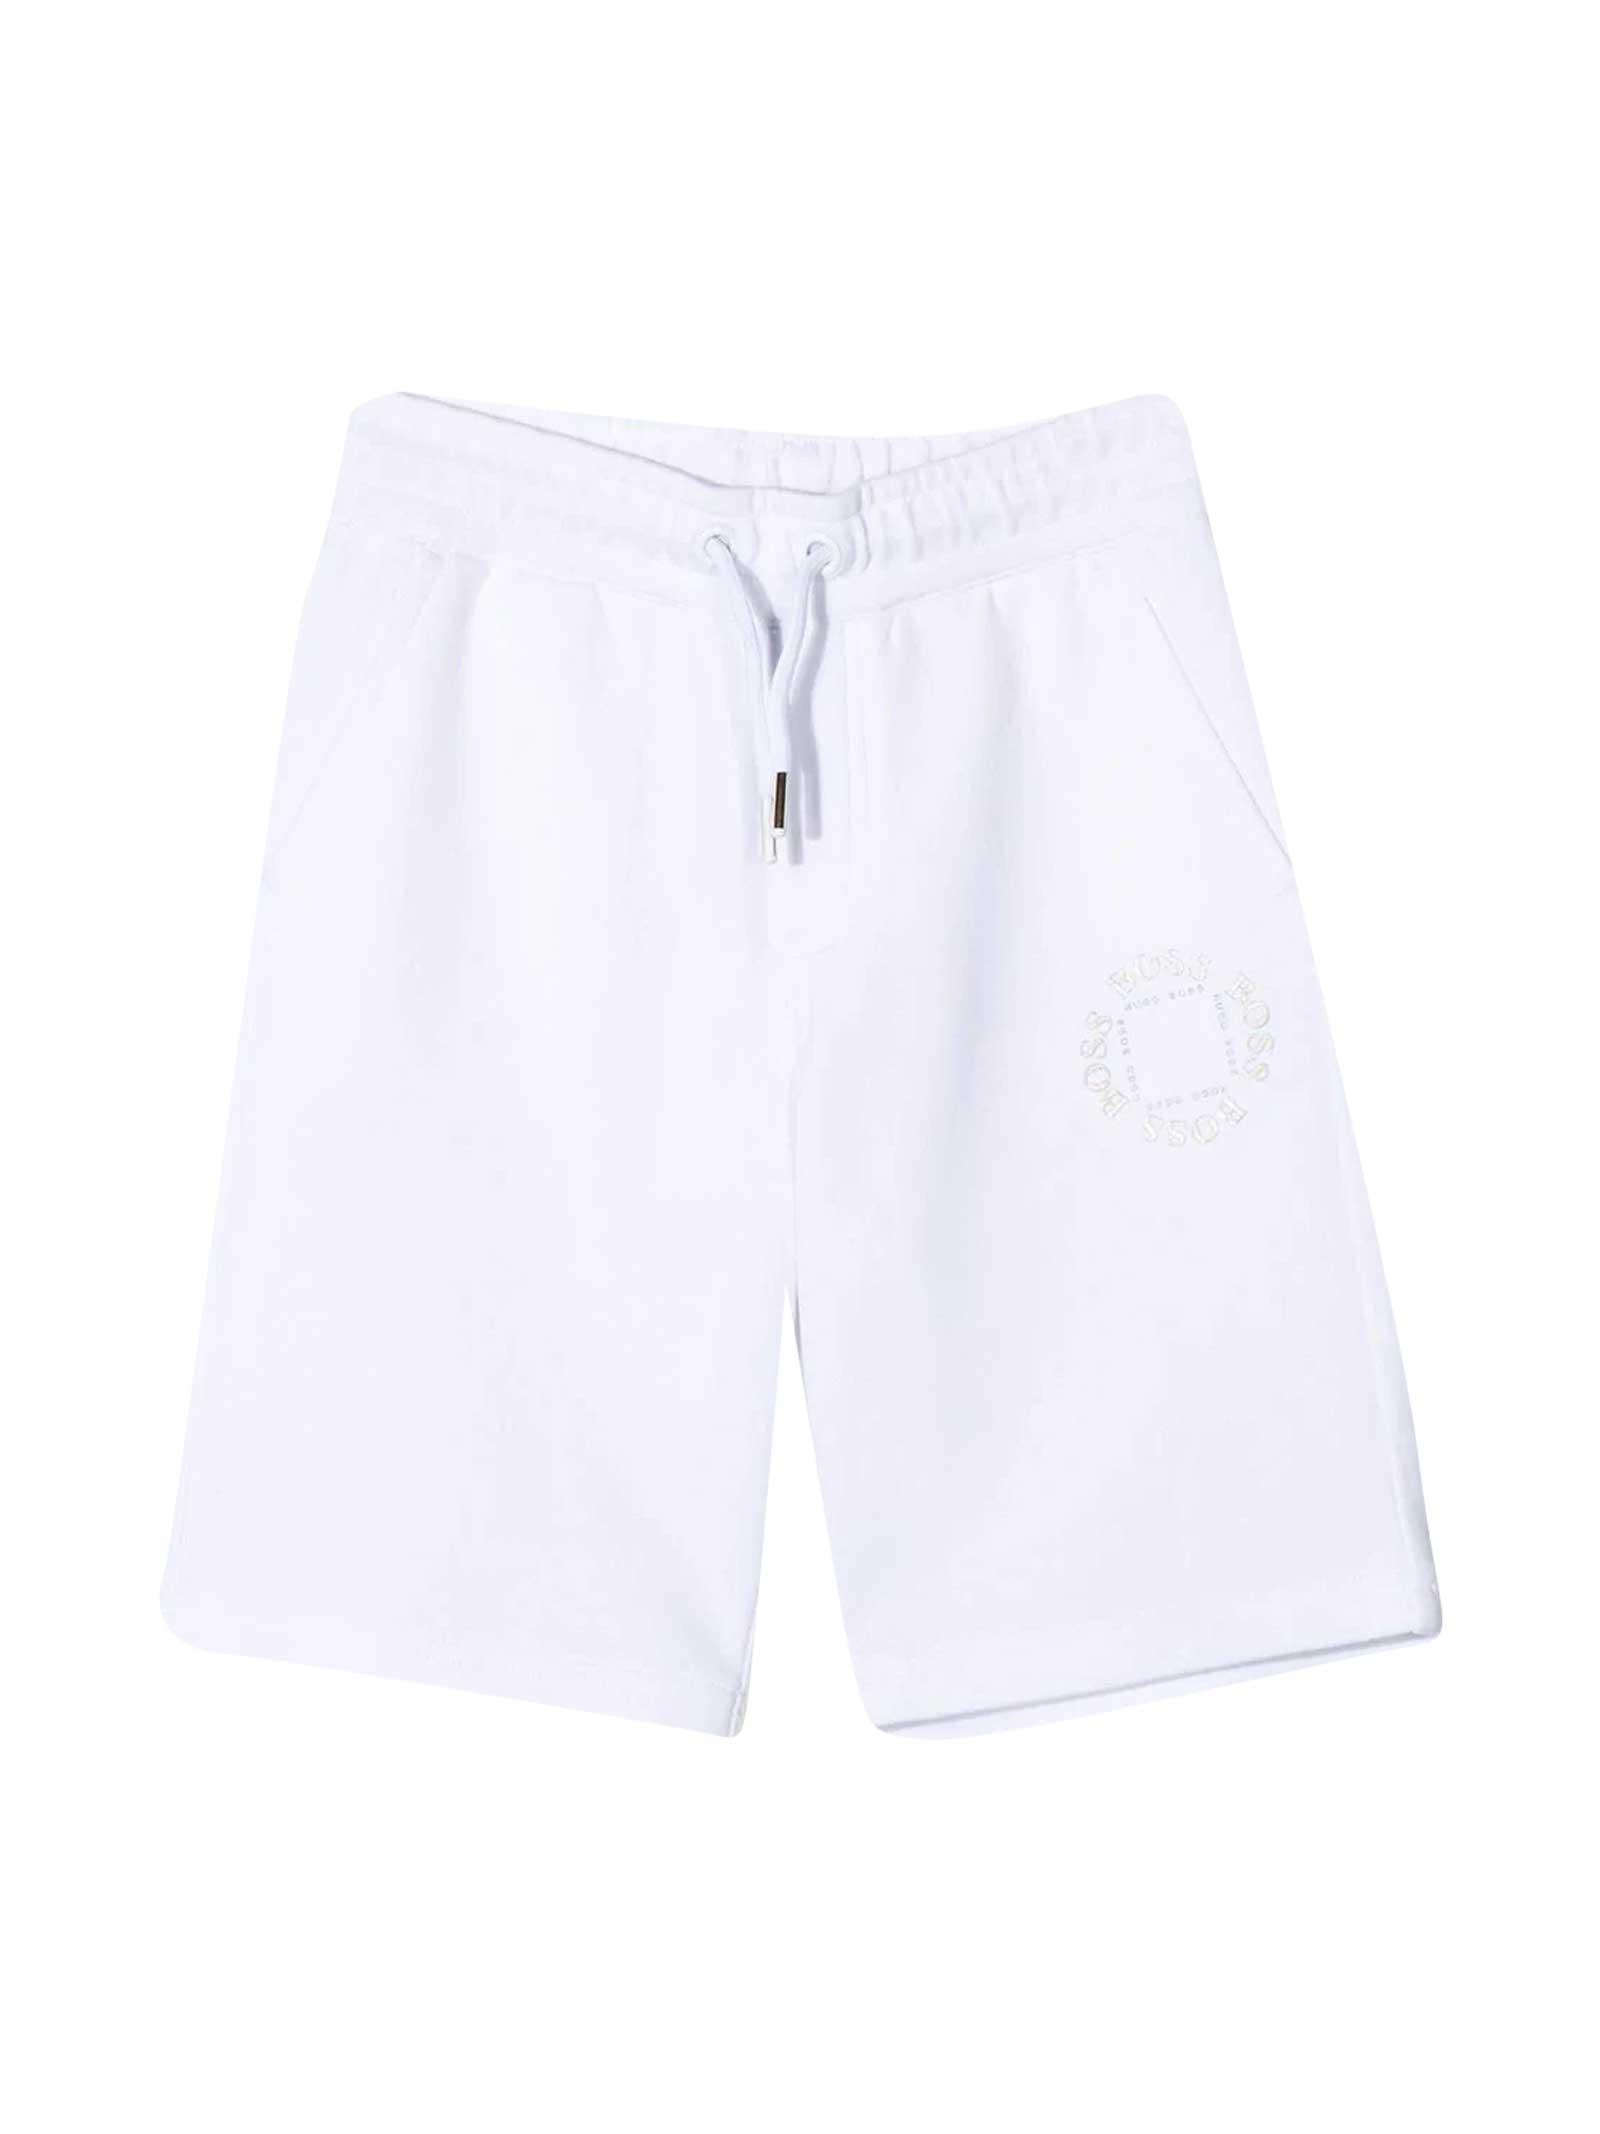 Hugo Boss WHITE BERMUDA SHORTS WITH COULISSE